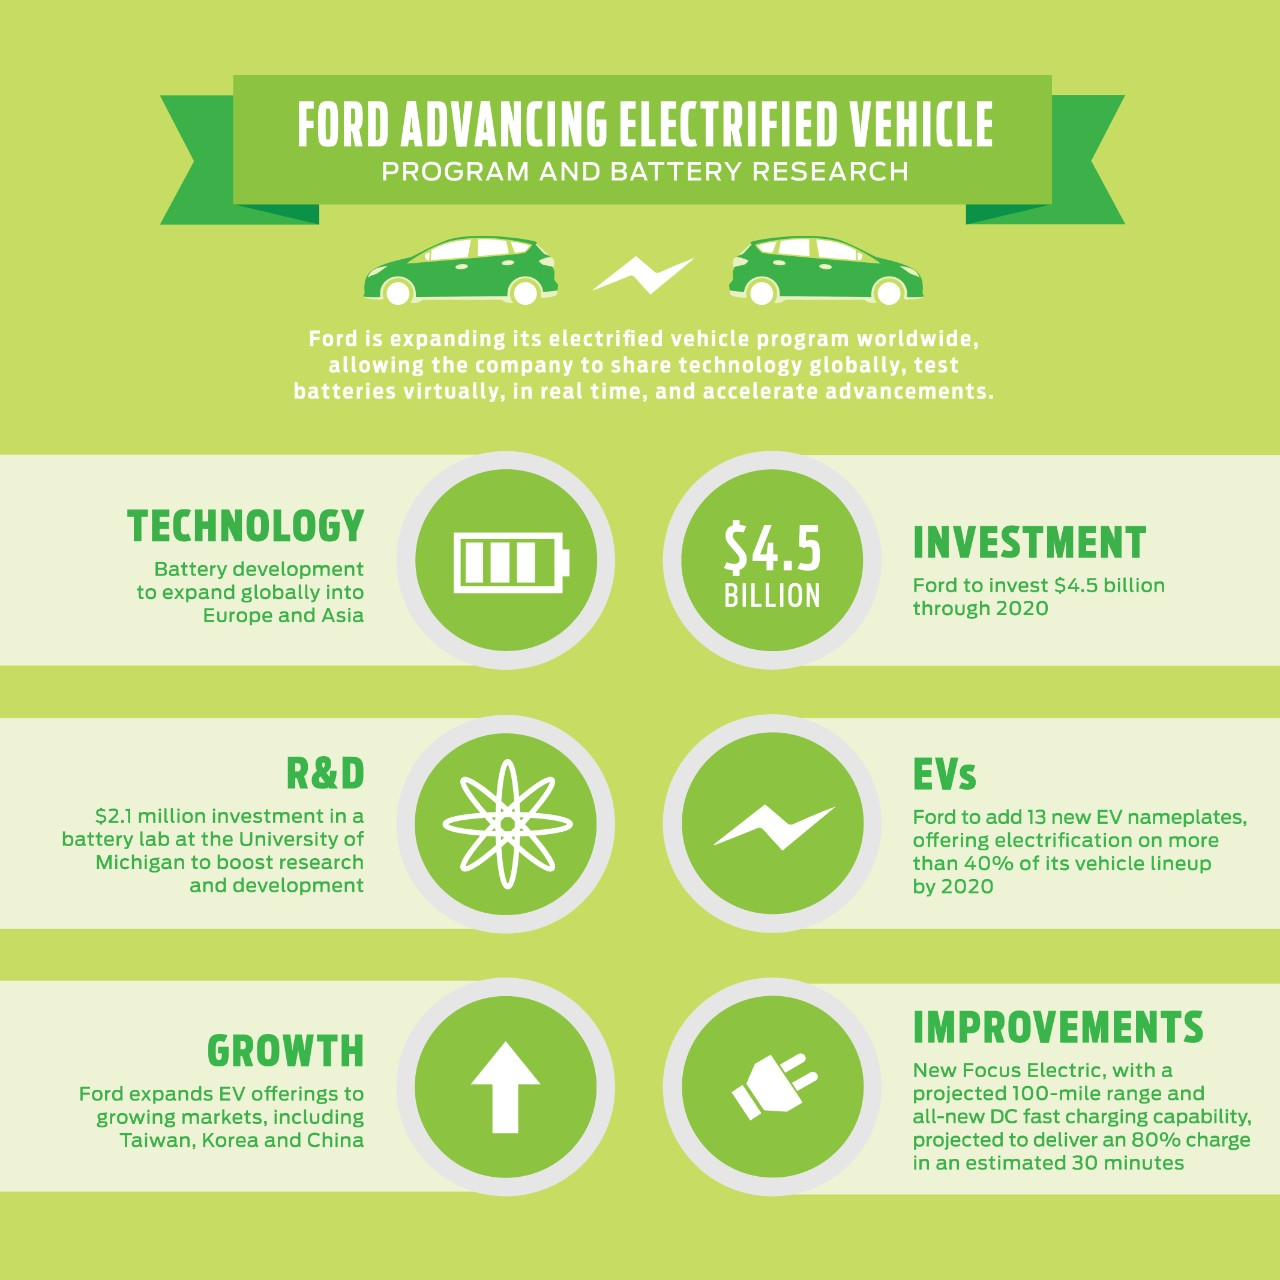 ford-advancing-electrified-vehicle-program